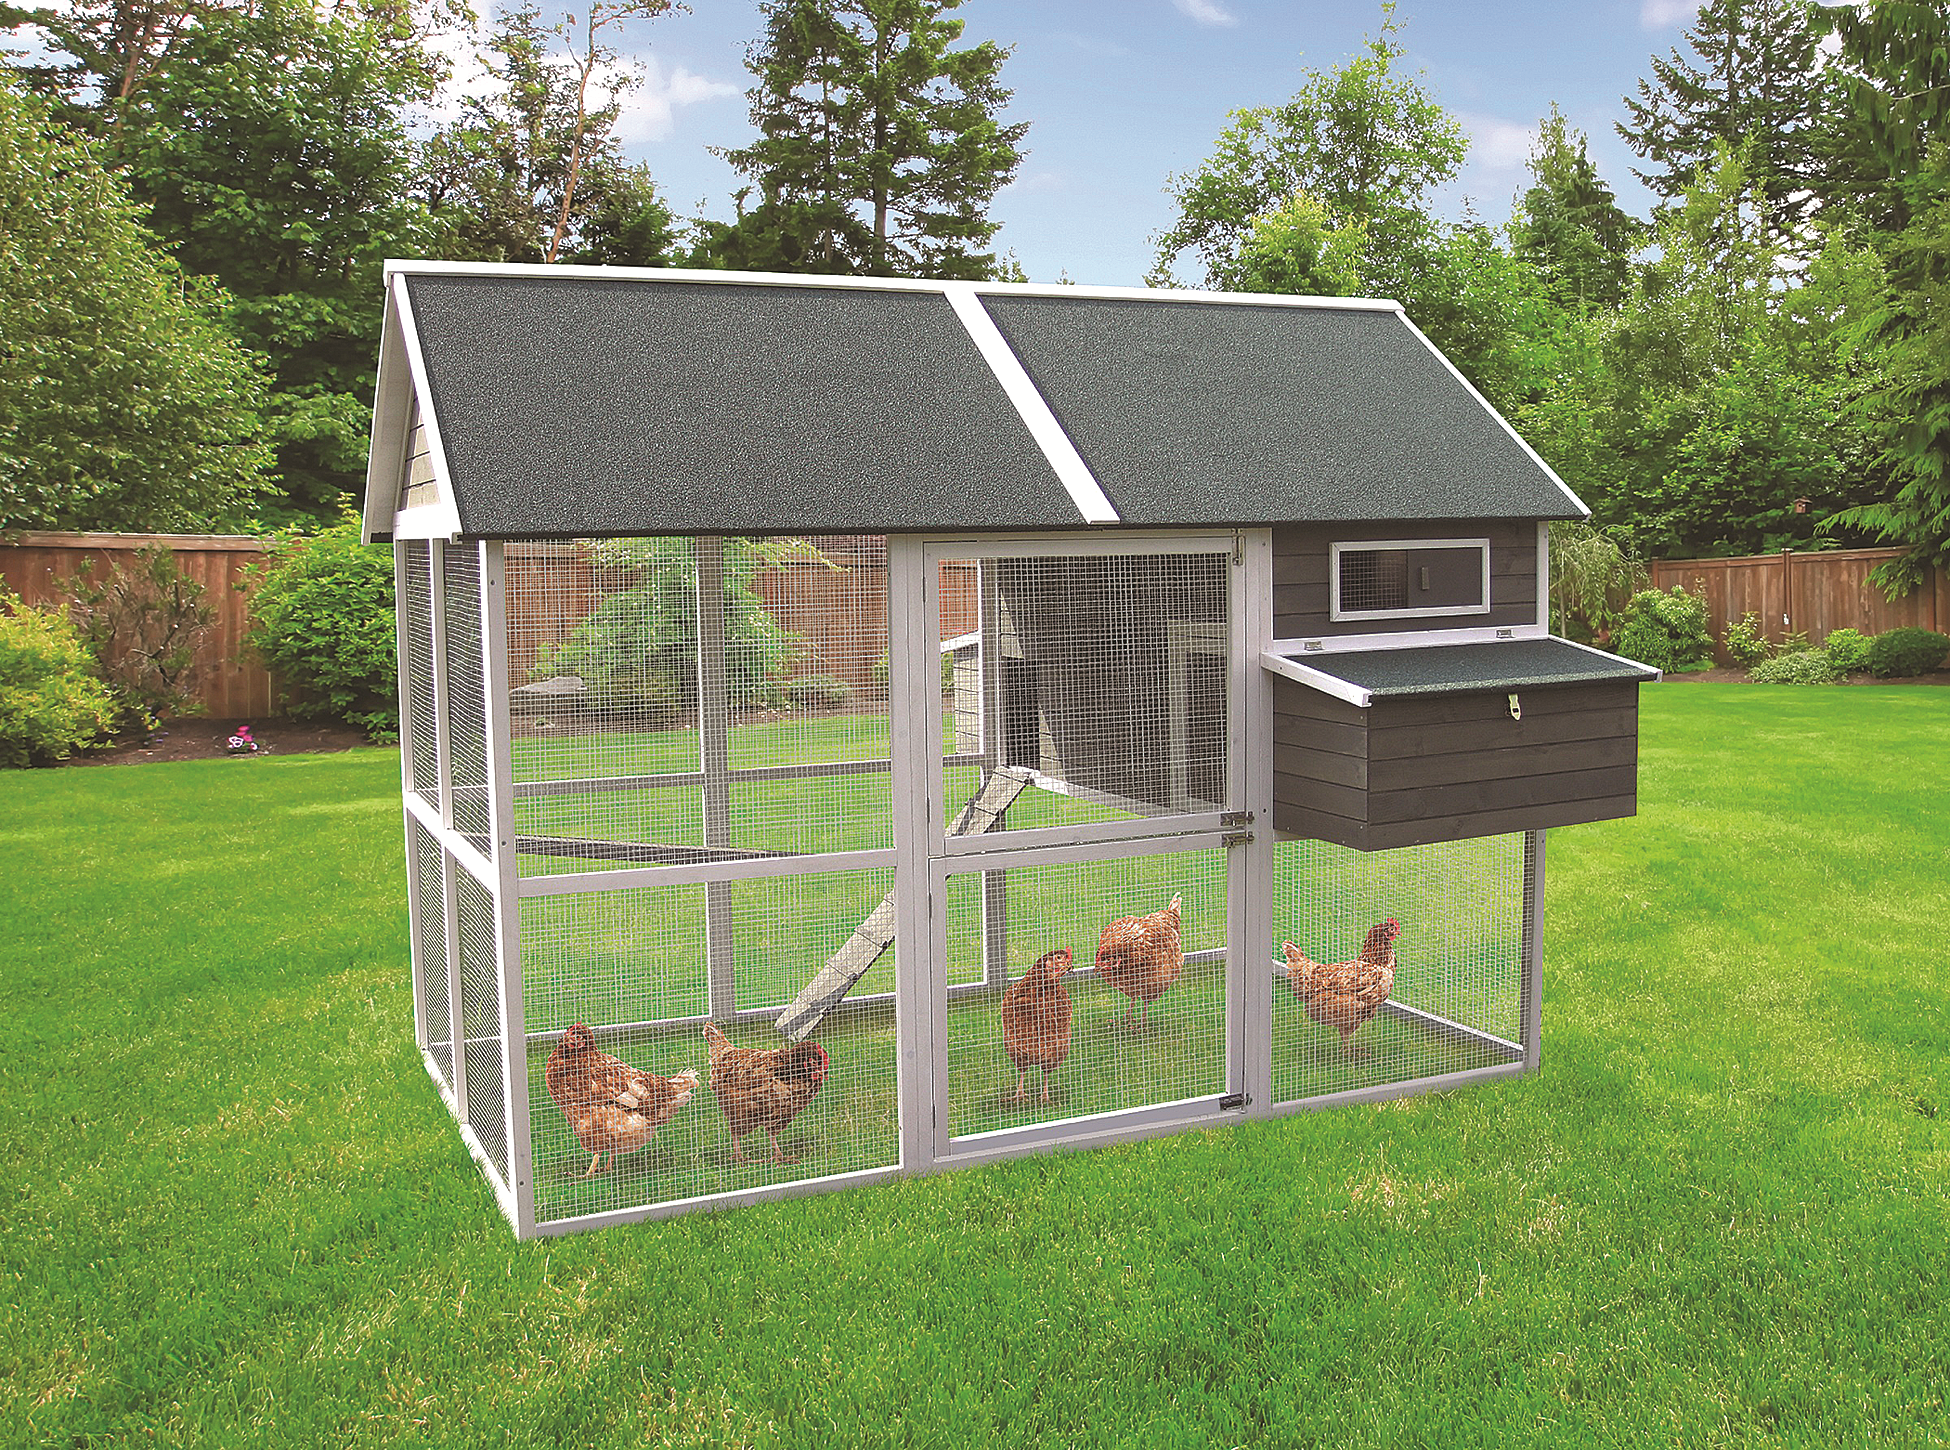 Diy Walk In Chicken Coop Innovation Pet Extra Large Green Walk In Coop Up To 15